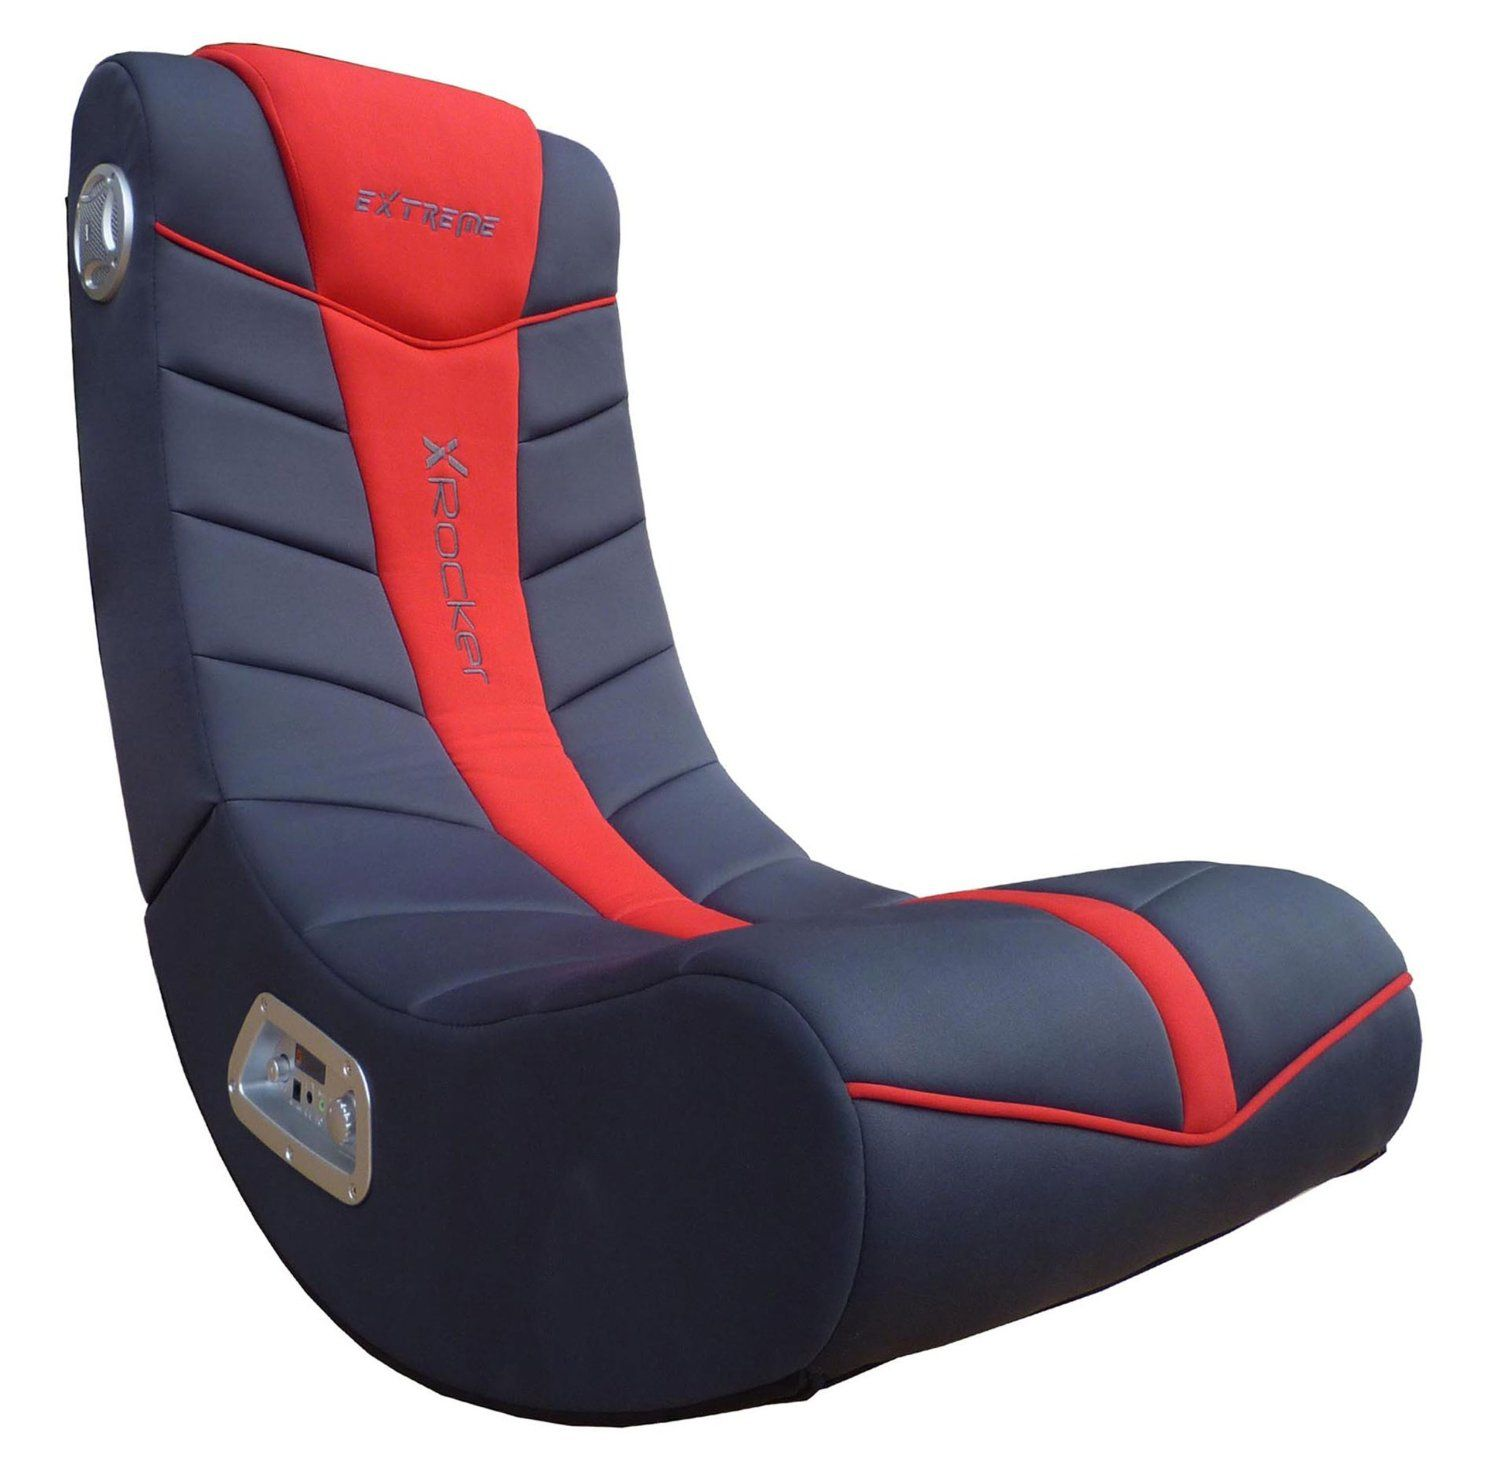 Robot Check Gaming Chair Rocker Chairs Kids Chairs